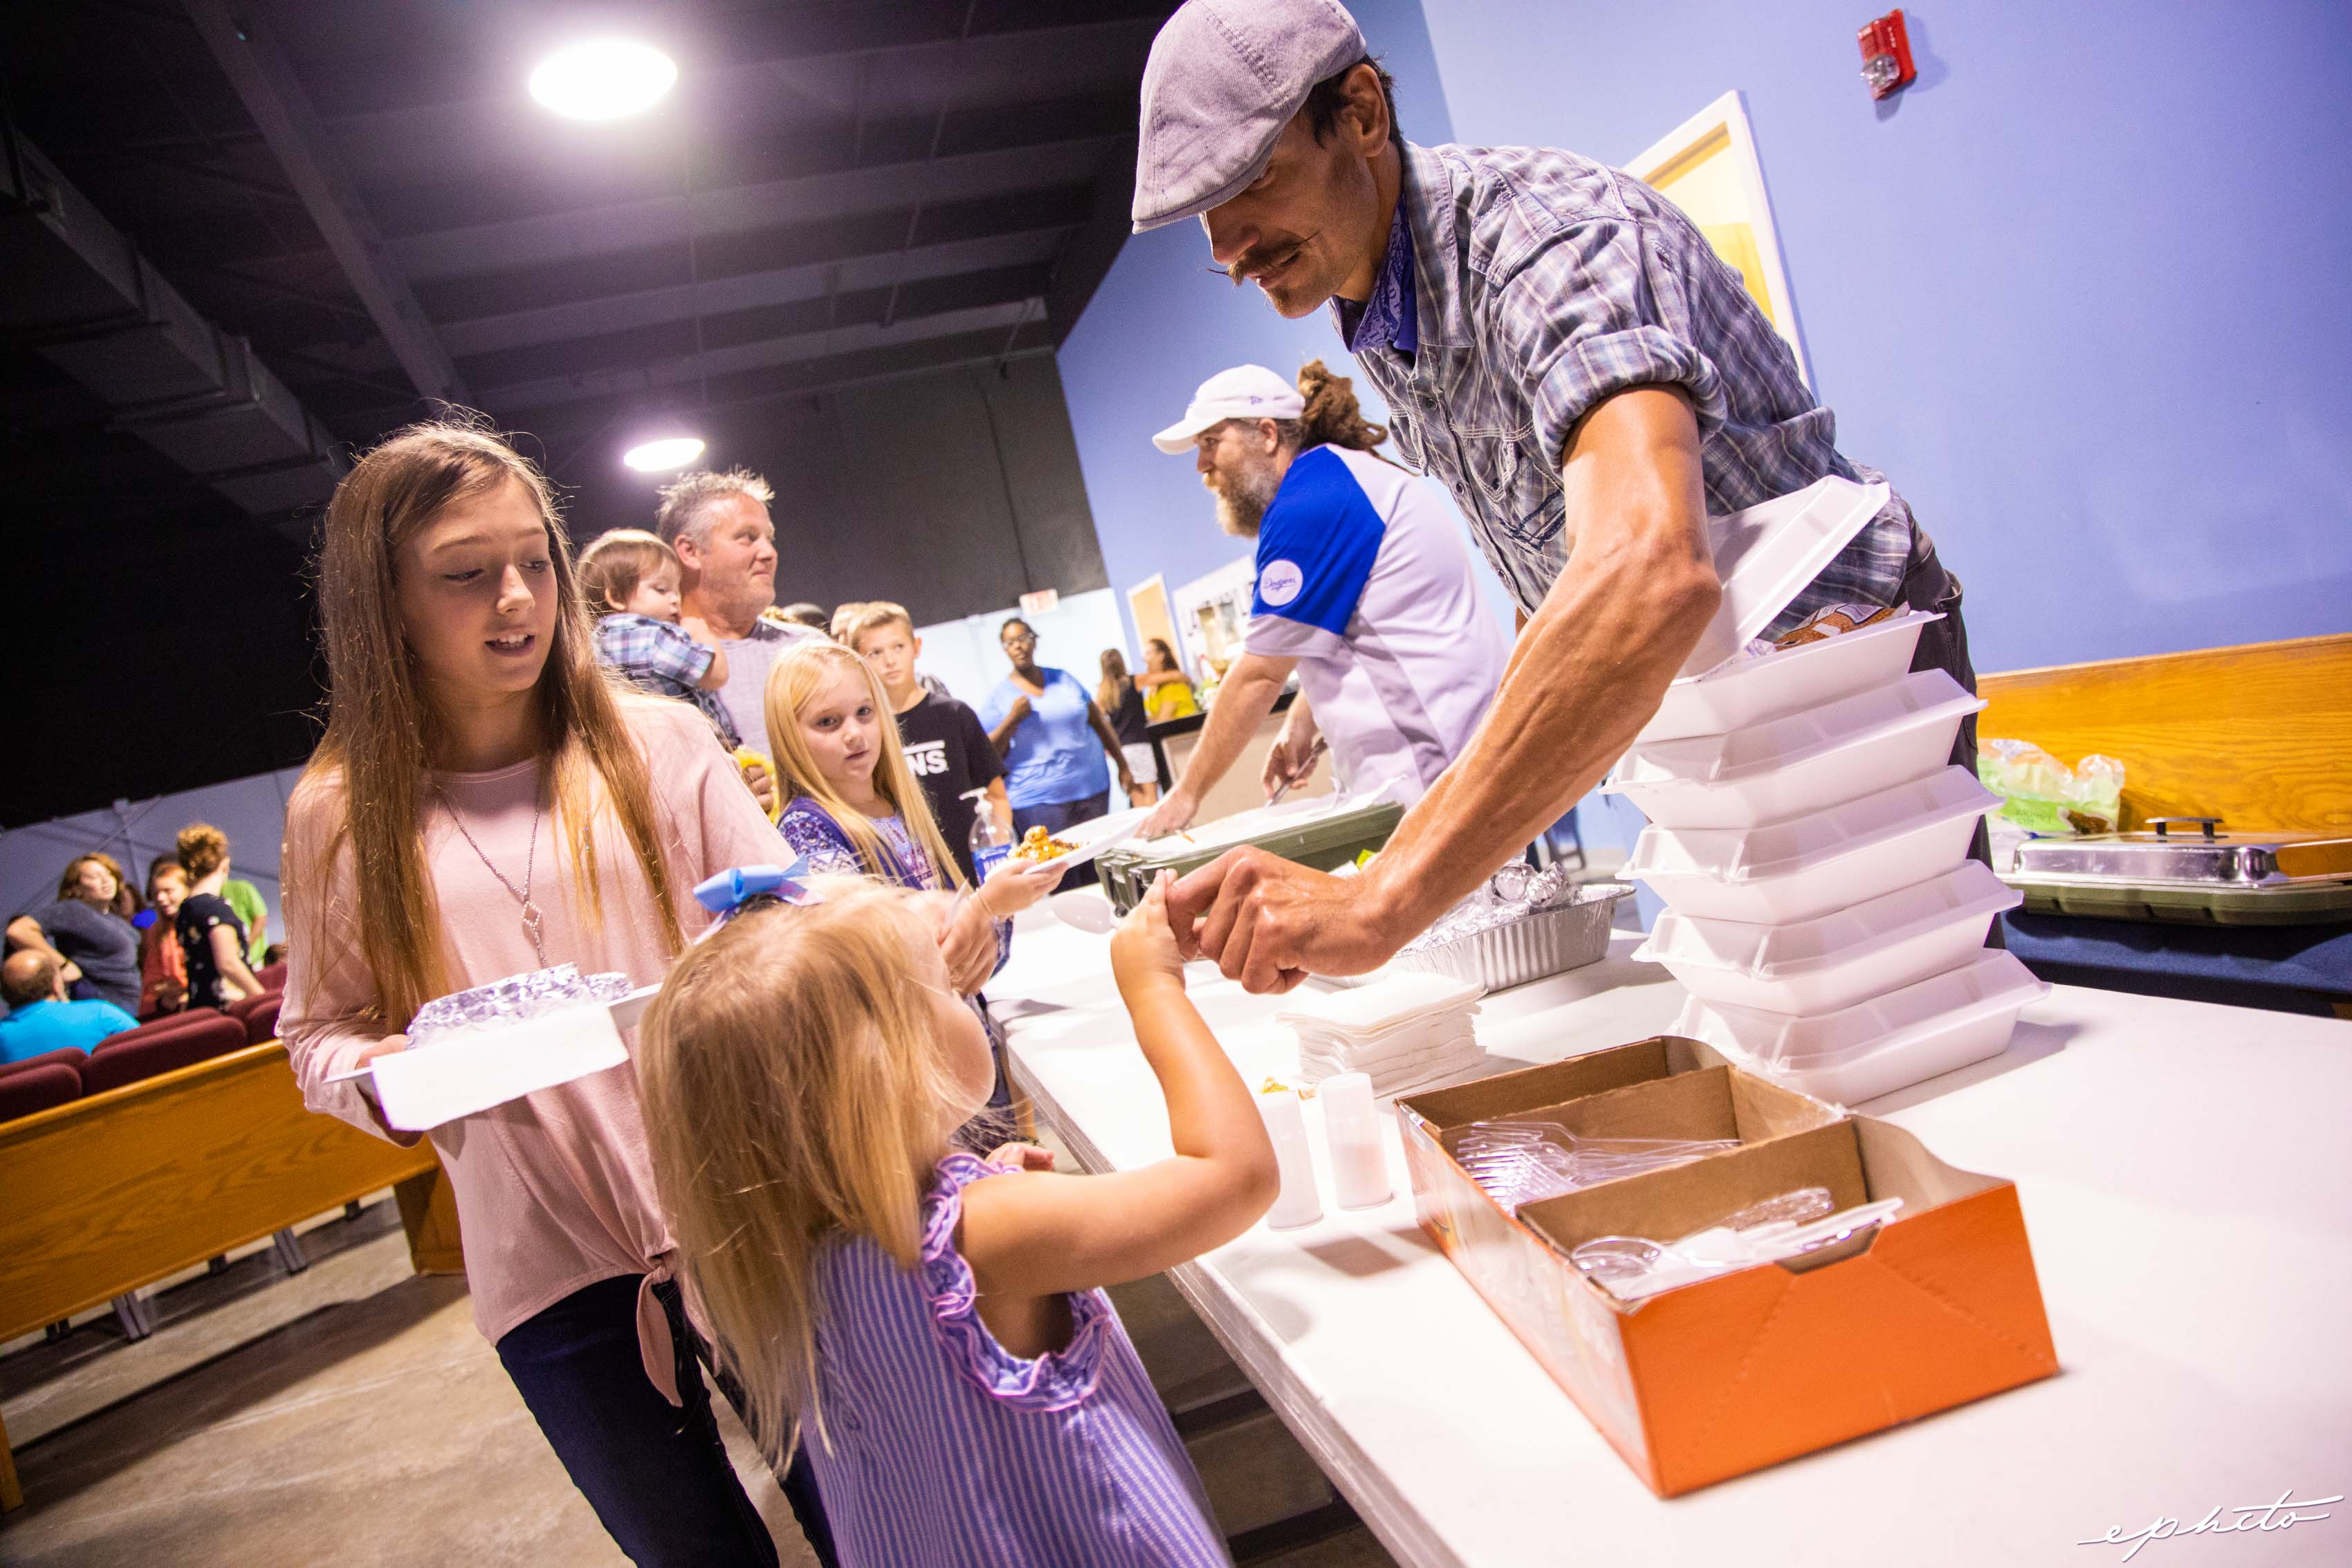 A little girl takes a utensil from a male volunteer in a disaster relief foodservice line.